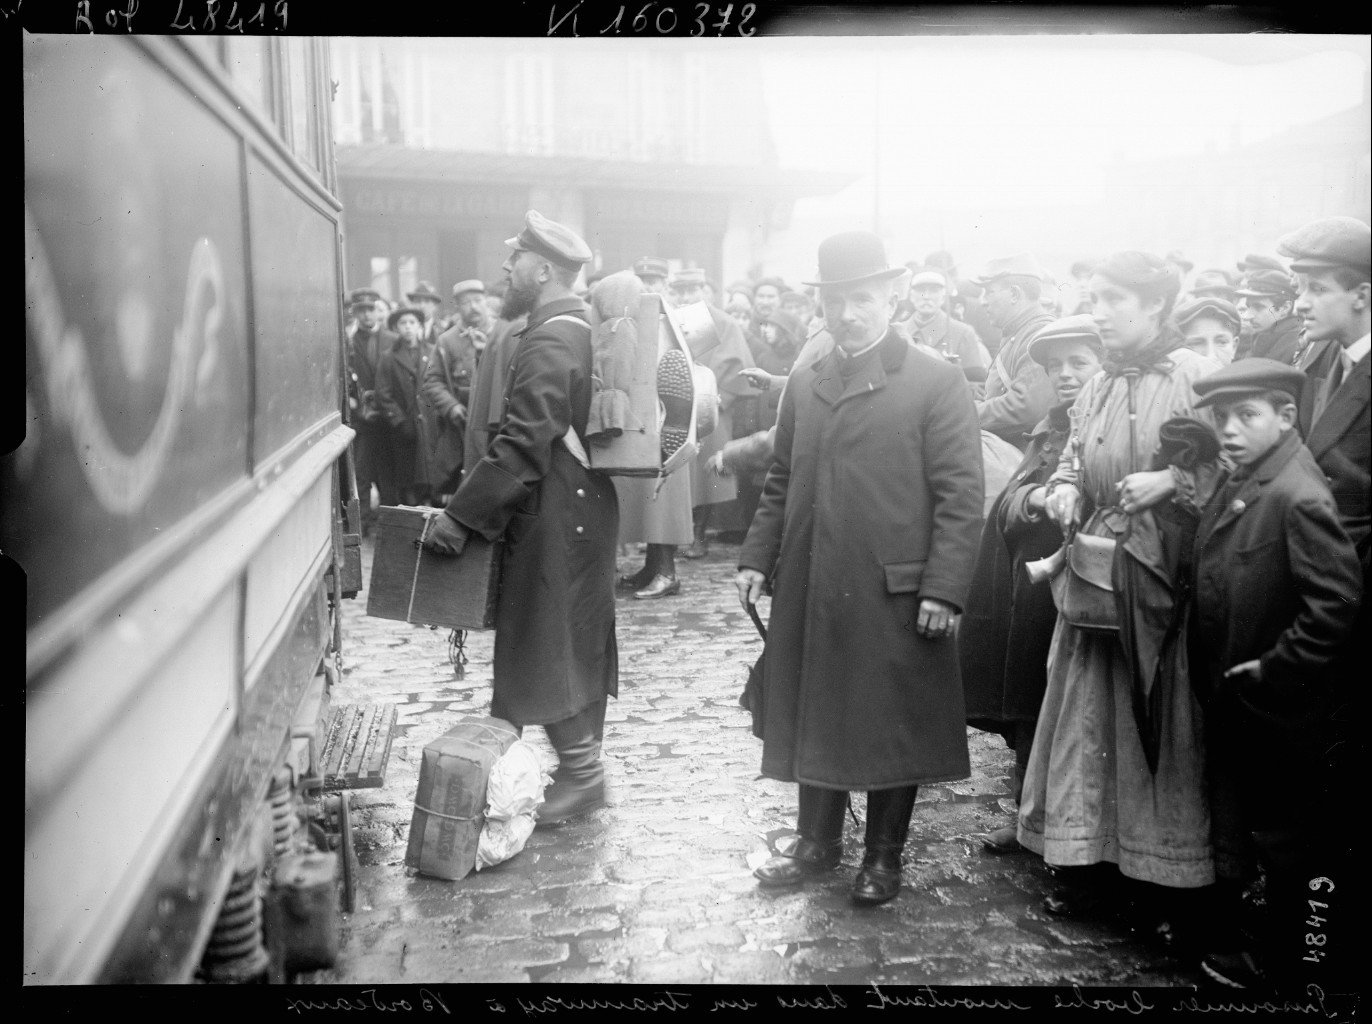 A German POW boarding the tram in Bordeaux., 1916 Bordeaux, French National Library - Bibliothèque Nationale de France, Public Domain Mark